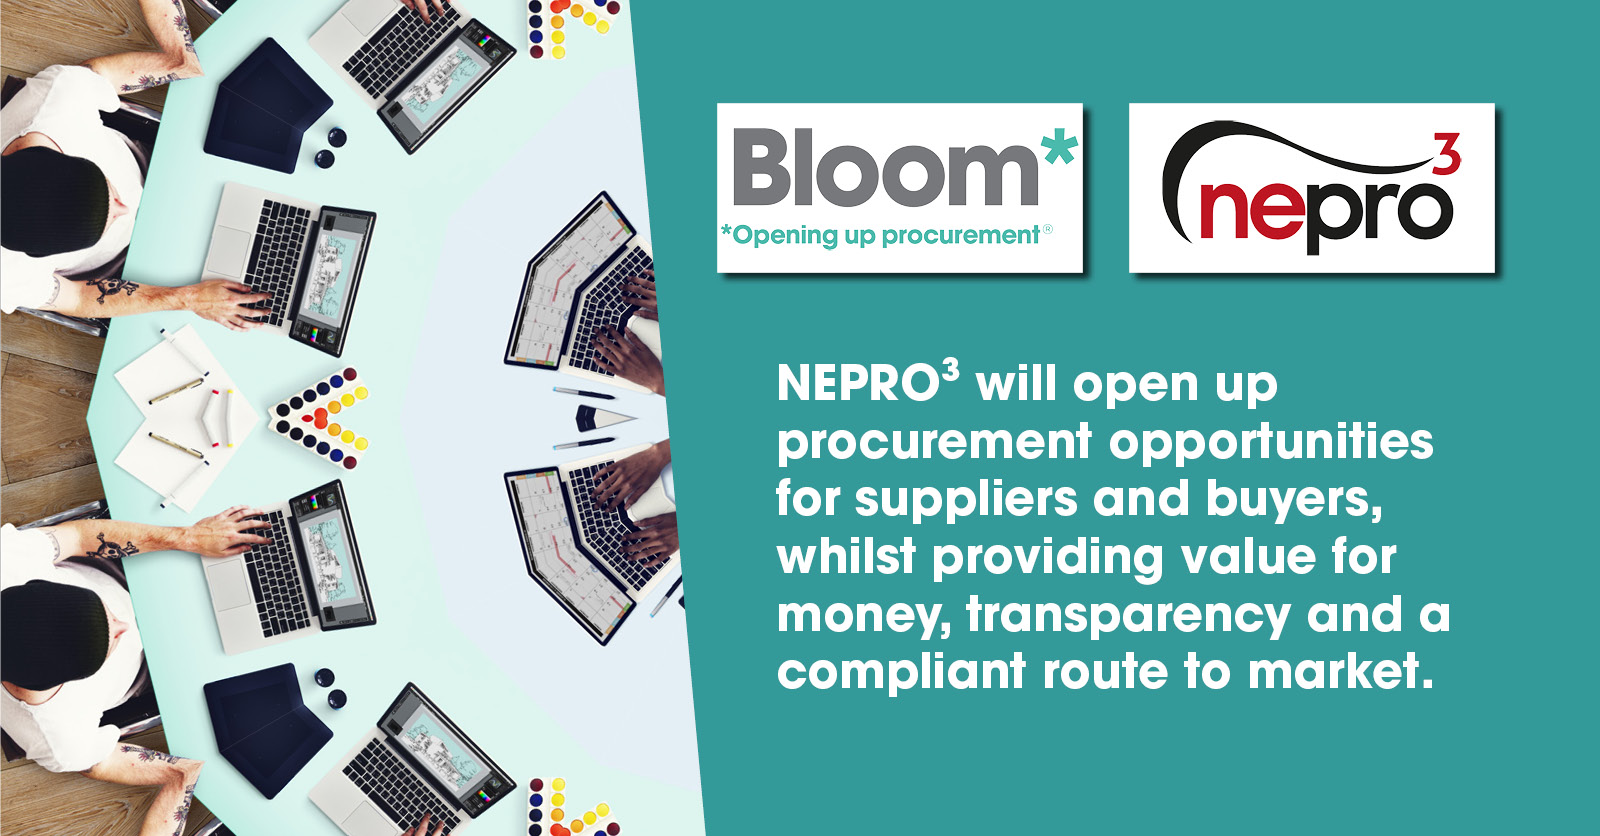 Bloom appointed by NEPO as NEPRO³ delivery partner